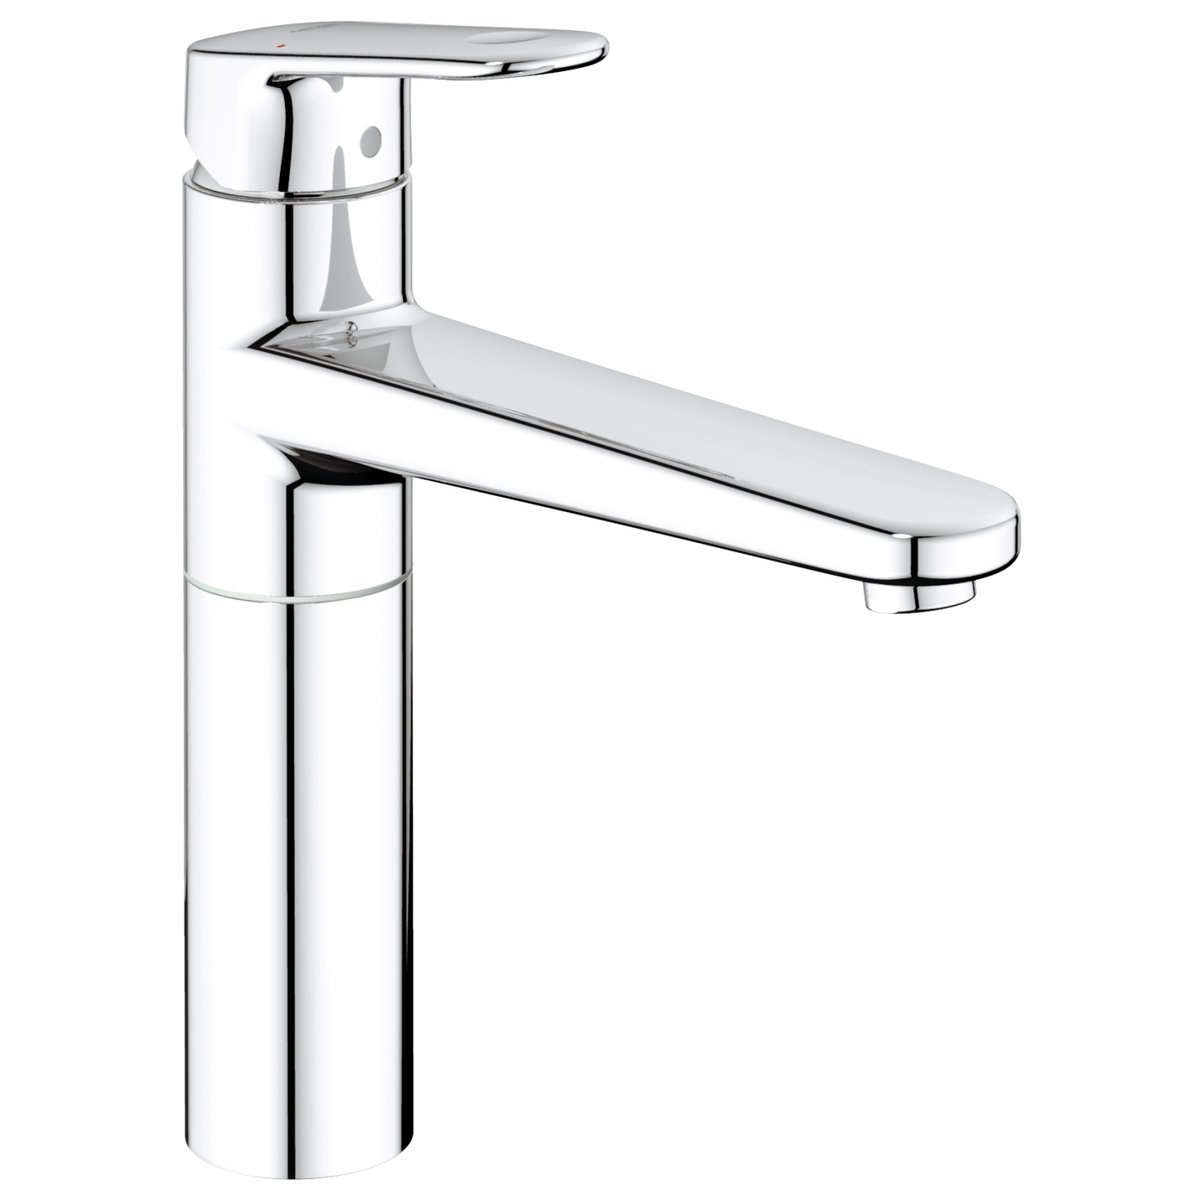 grohe europlus robinet de cuisine avec bec tournant chrome. Black Bedroom Furniture Sets. Home Design Ideas